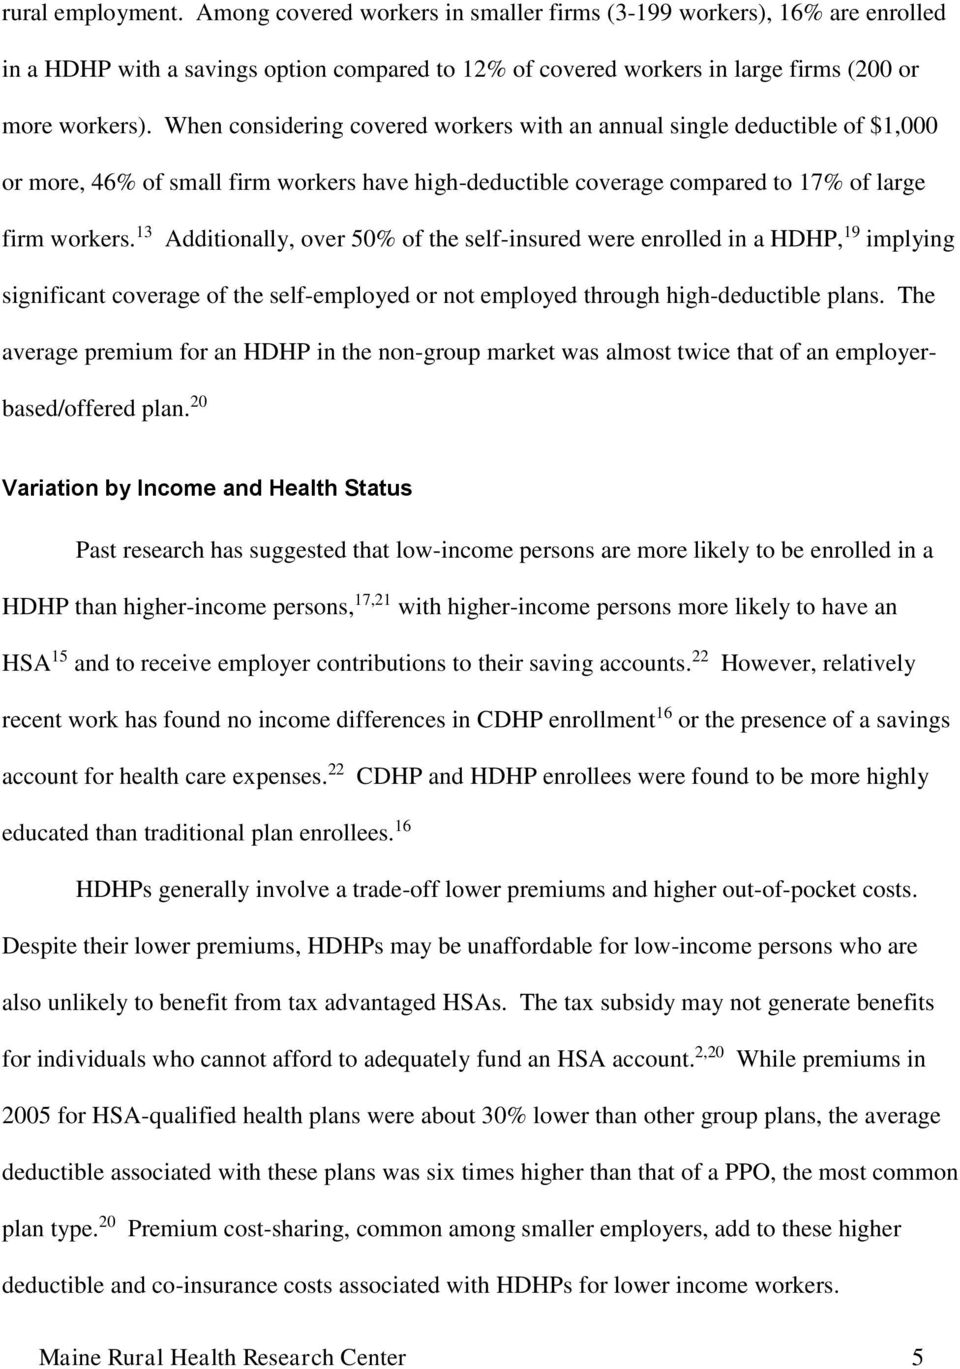 13 Additionally, over 50% of the self-insured were enrolled in a HDHP, 19 implying significant coverage of the self-employed or not employed through high-deductible plans.